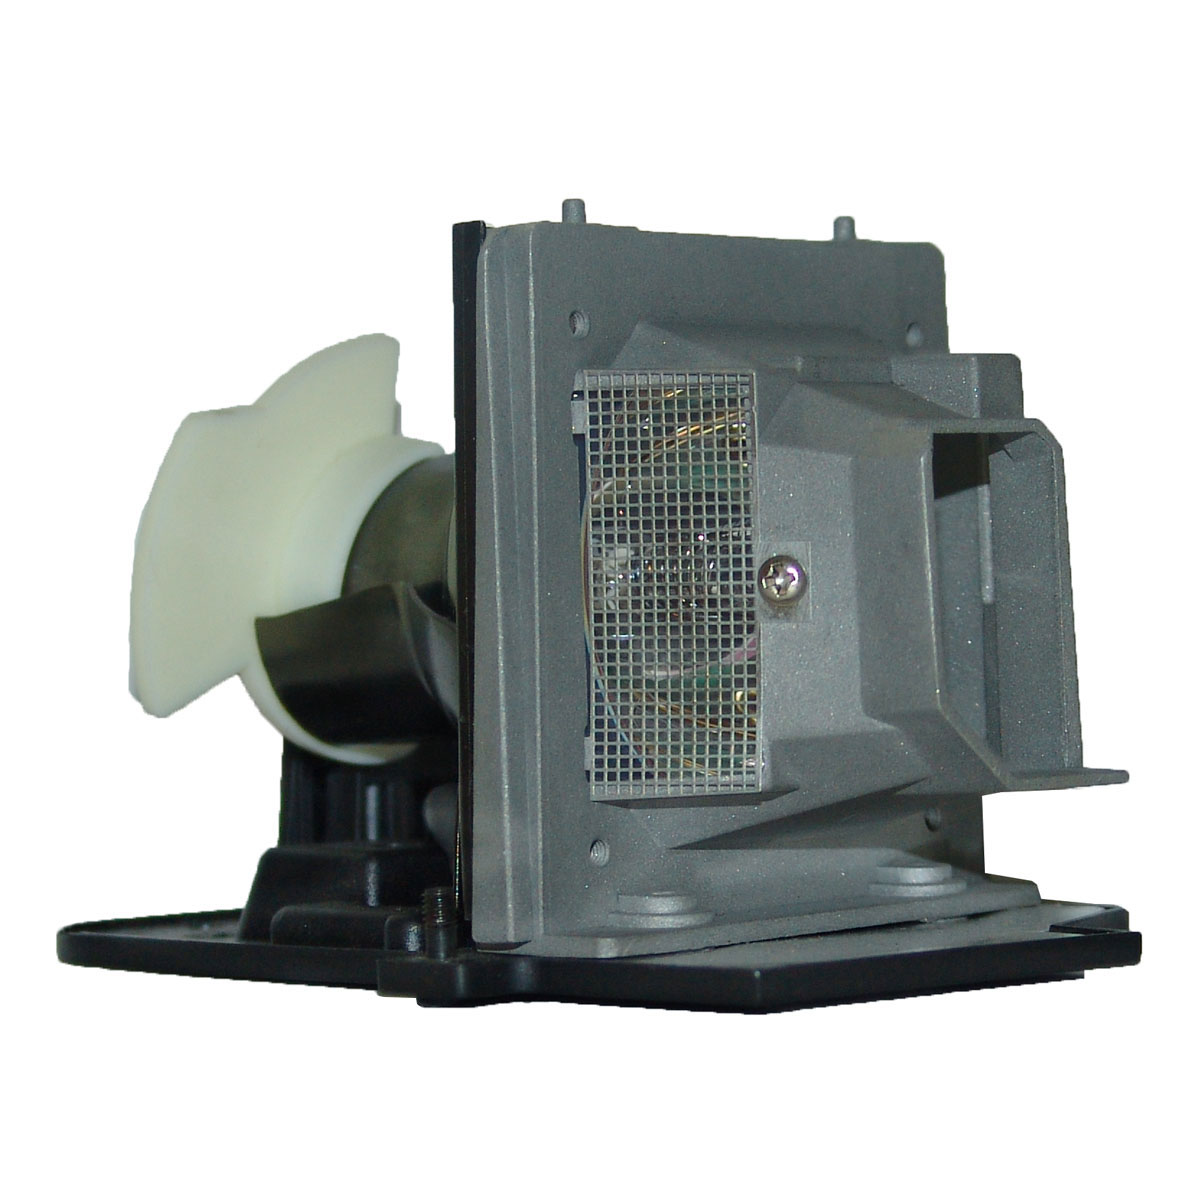 Original Philips Projector Lamp Replacement for Optoma S16E (Bulb Only) - image 1 of 5